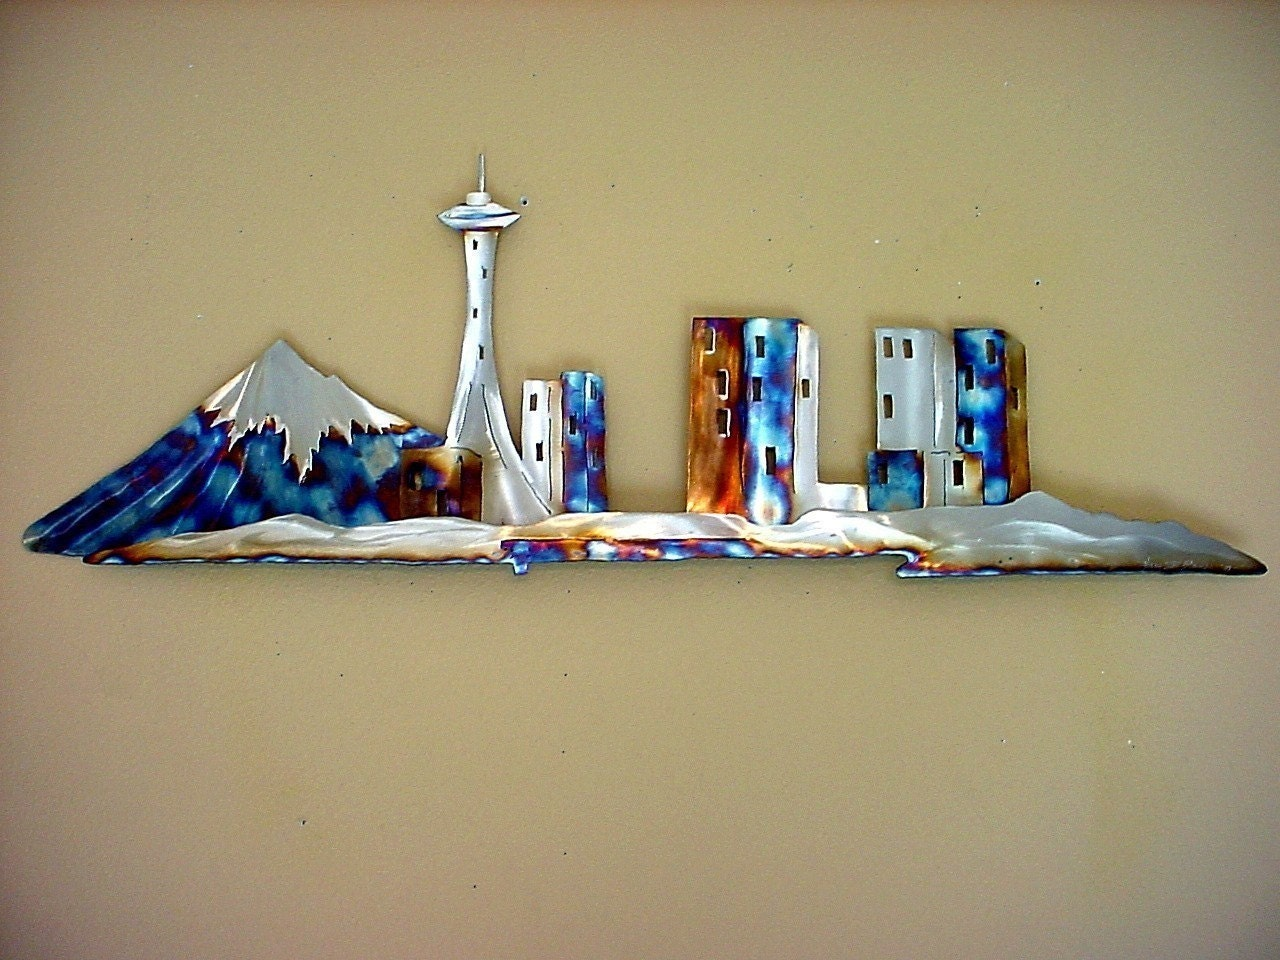 seattle space needle stainless steel metal wall art downtown. Black Bedroom Furniture Sets. Home Design Ideas